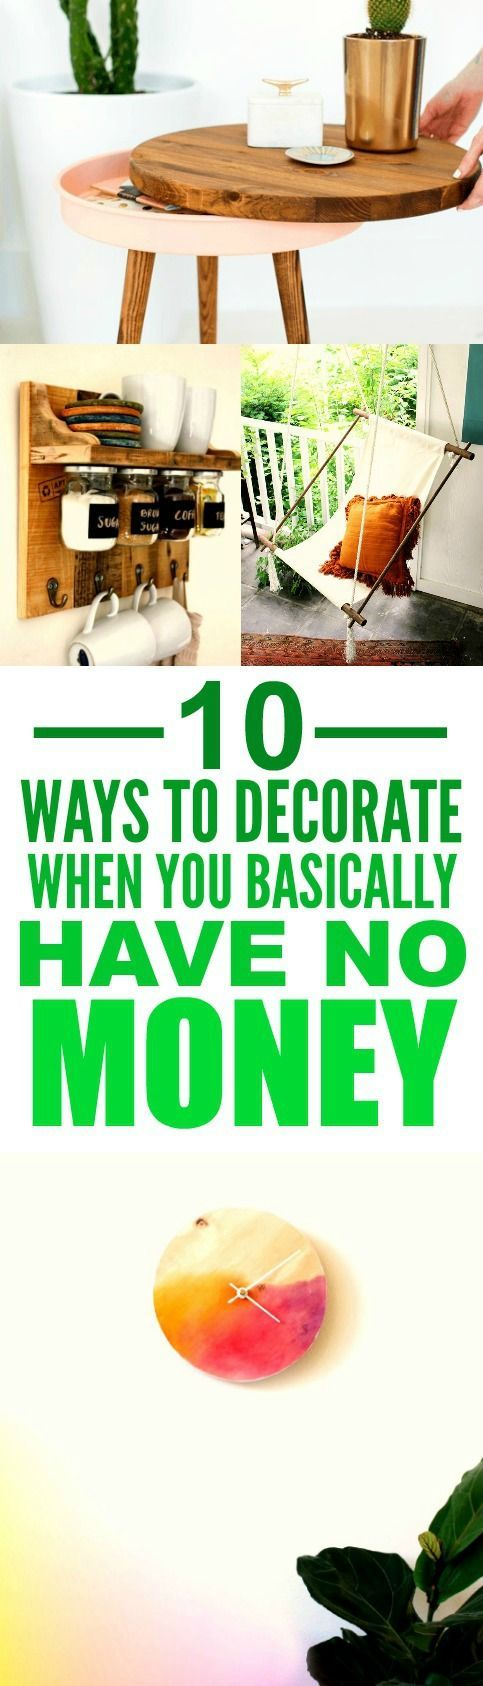 218 best Home Decor on a Budget images on Pinterest | Home decor ...